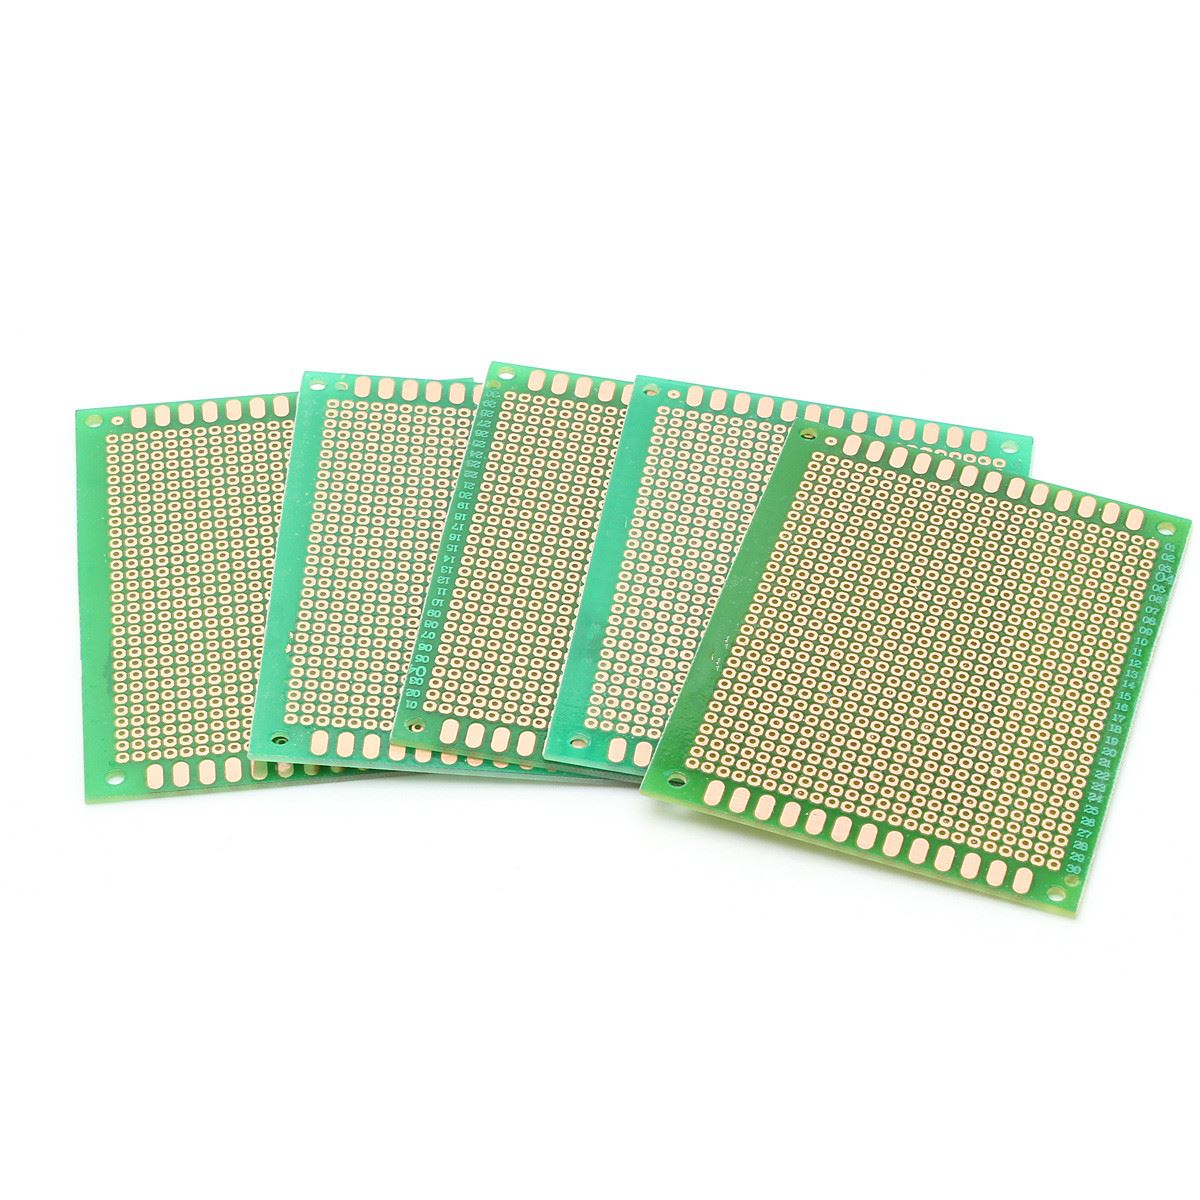 Universal 12pcs Lot Electric Printed Circuit Prototype Pcb Board Artwork Stripboard And Breadboard Layout 5pcs 7x9cm 70x90mm Diy Soldering Copper Fr4 Double Sided